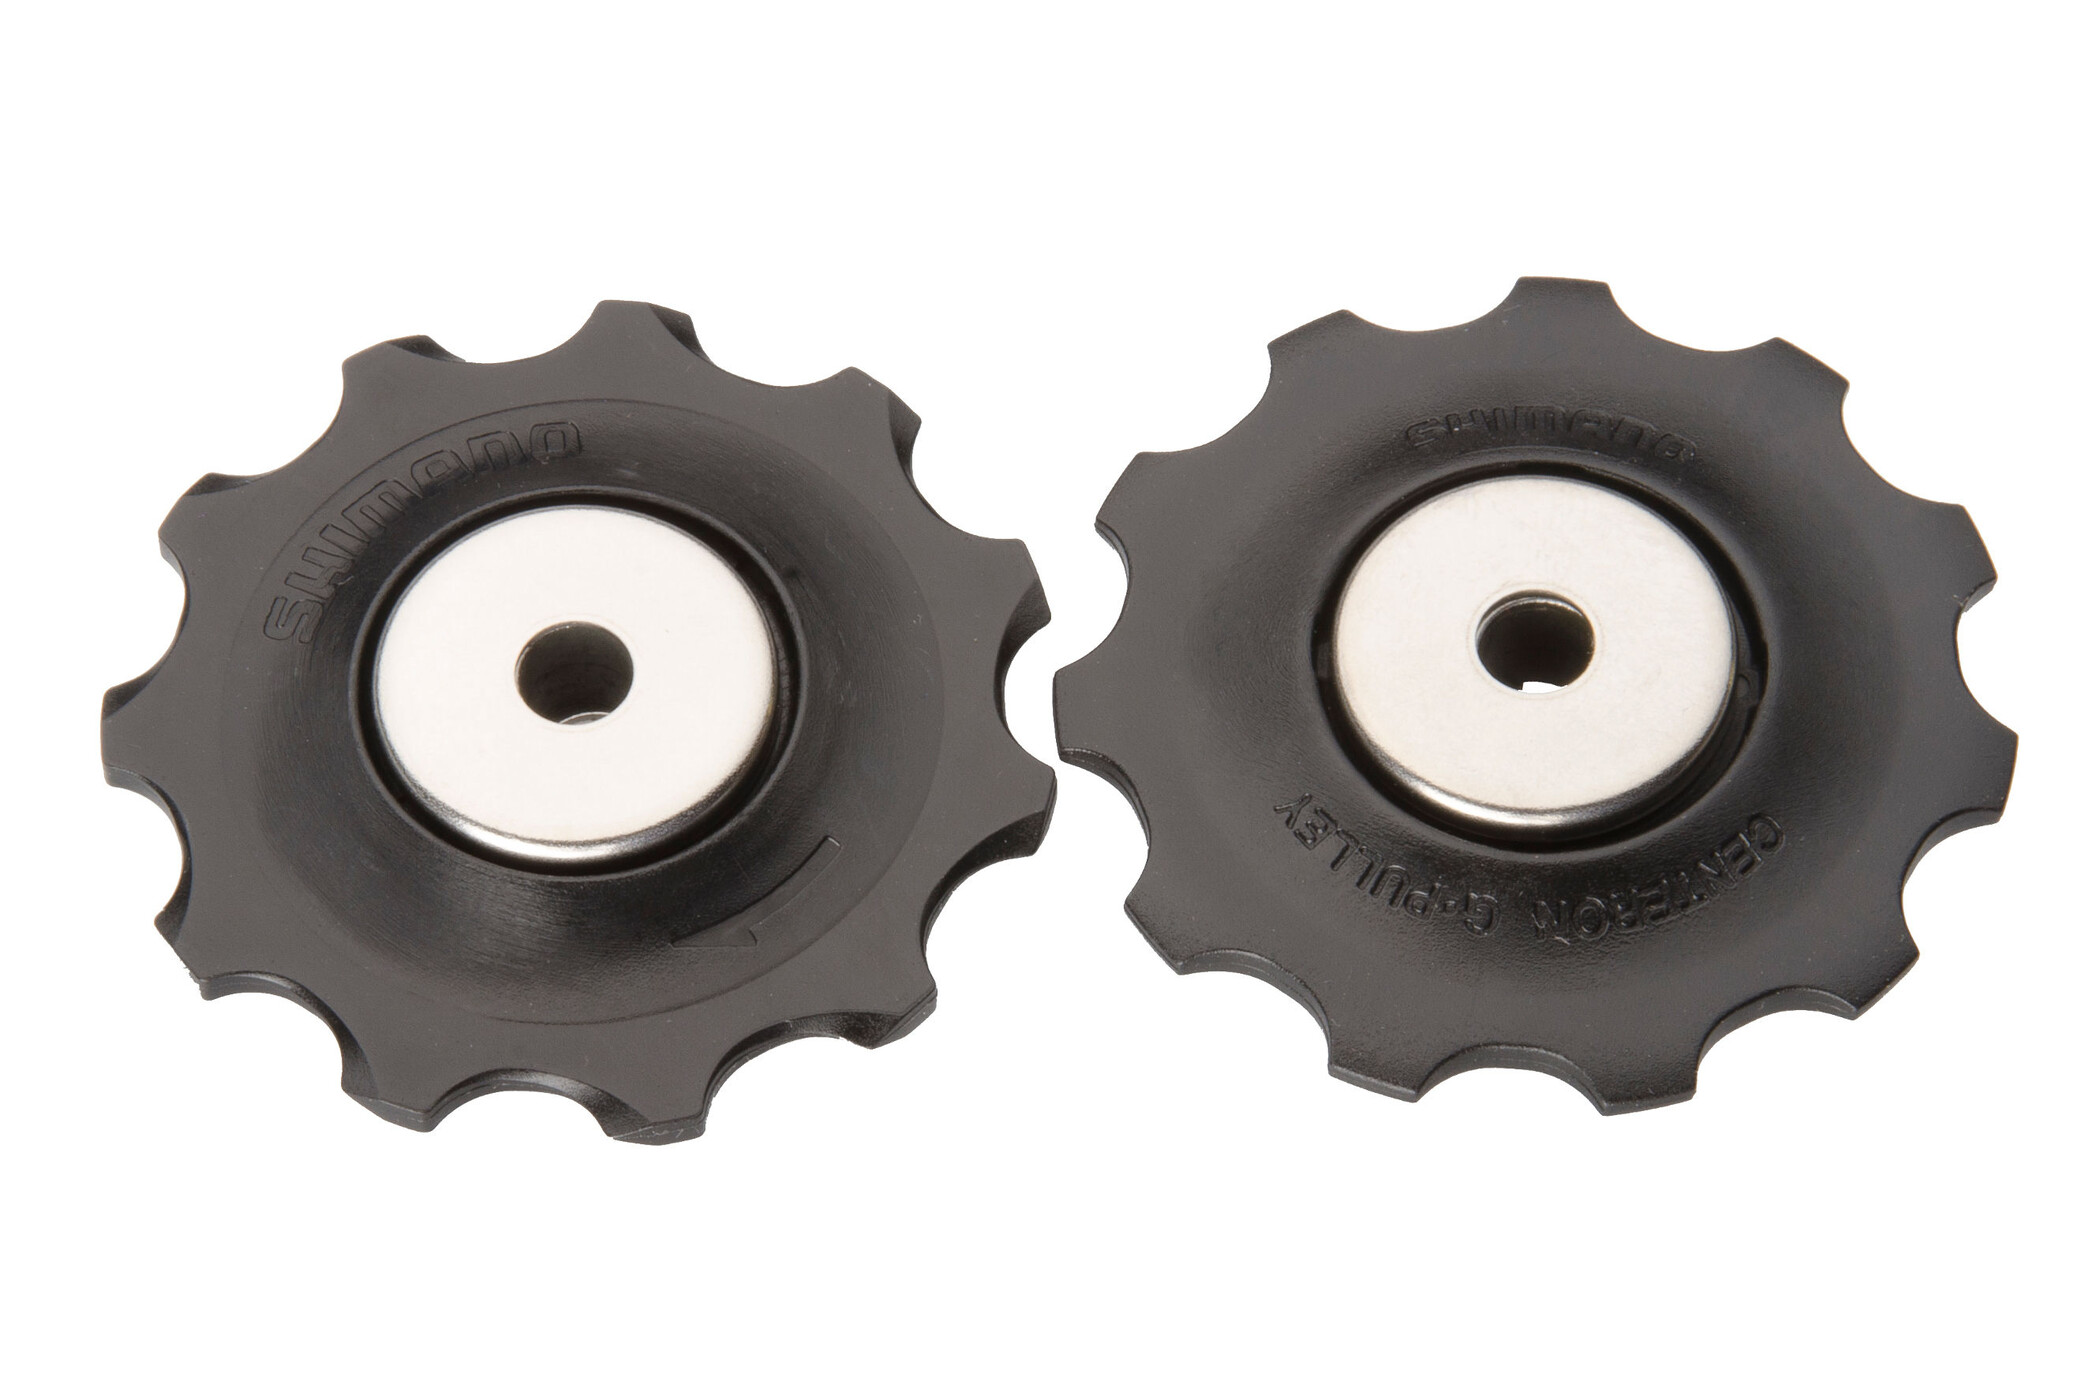 Shimano 105 Jockey Wheel 7/8-speed, black (2019) | Pulley wheels